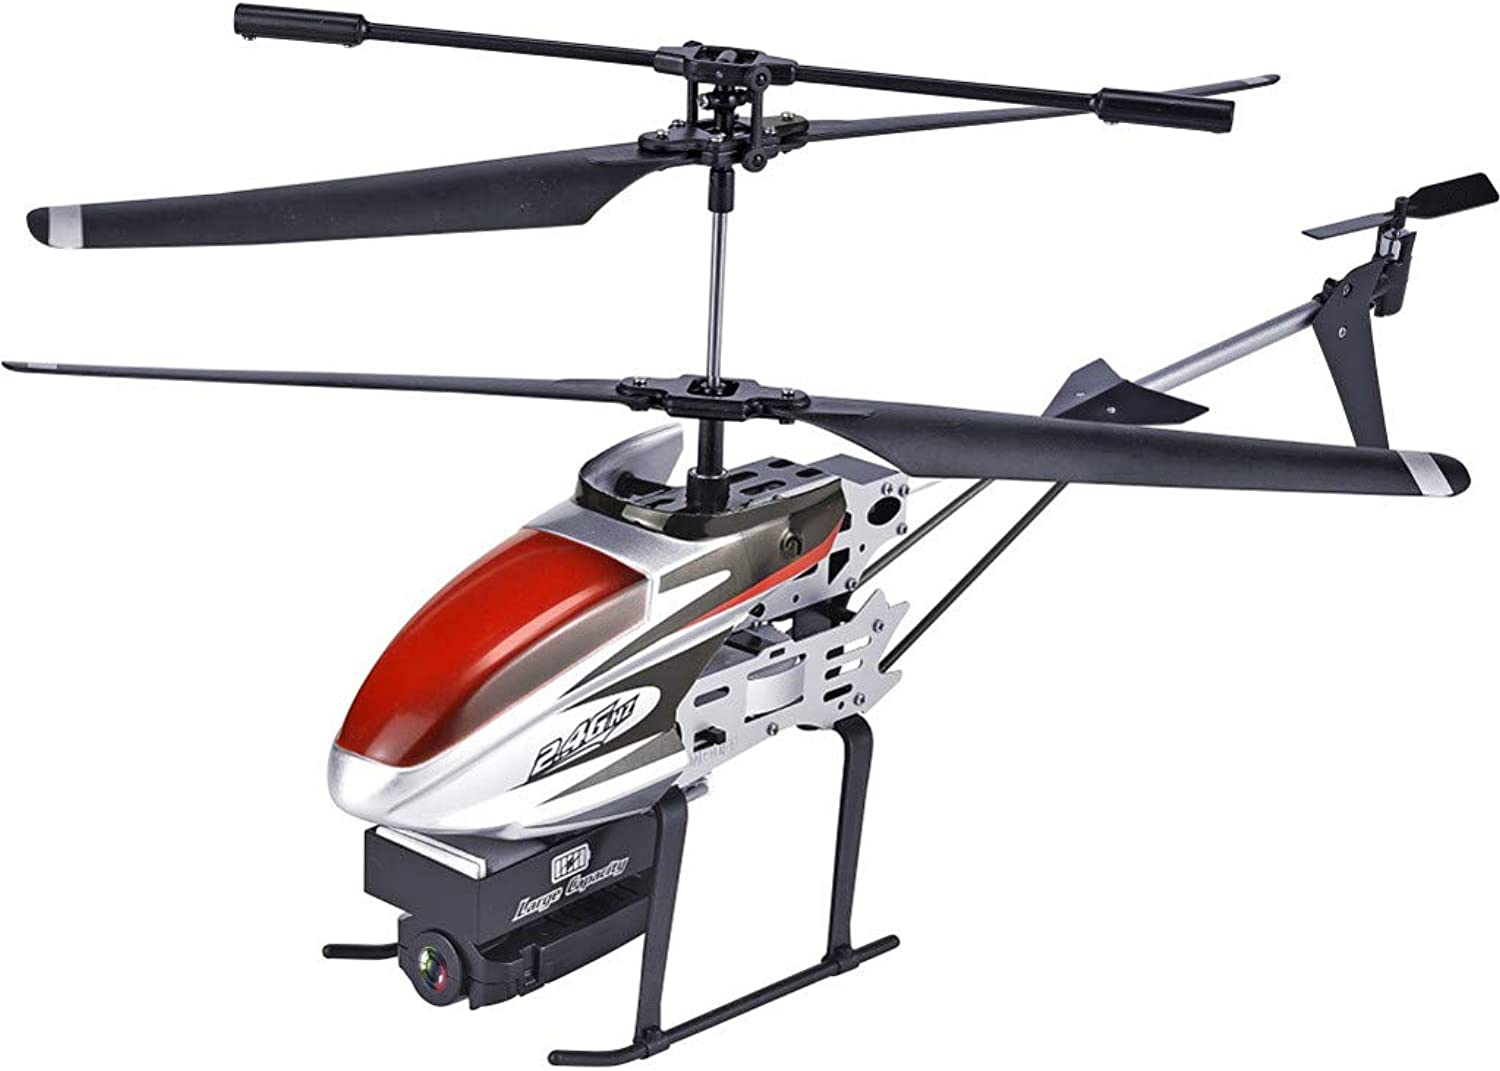 Cebbay Remote Helicopter, Endurance Drone 2.4GHz 3.5CH RC 1080P WIFI Camera FPV RC Helicopter,Teen Birthday Present,Outdoor Toys